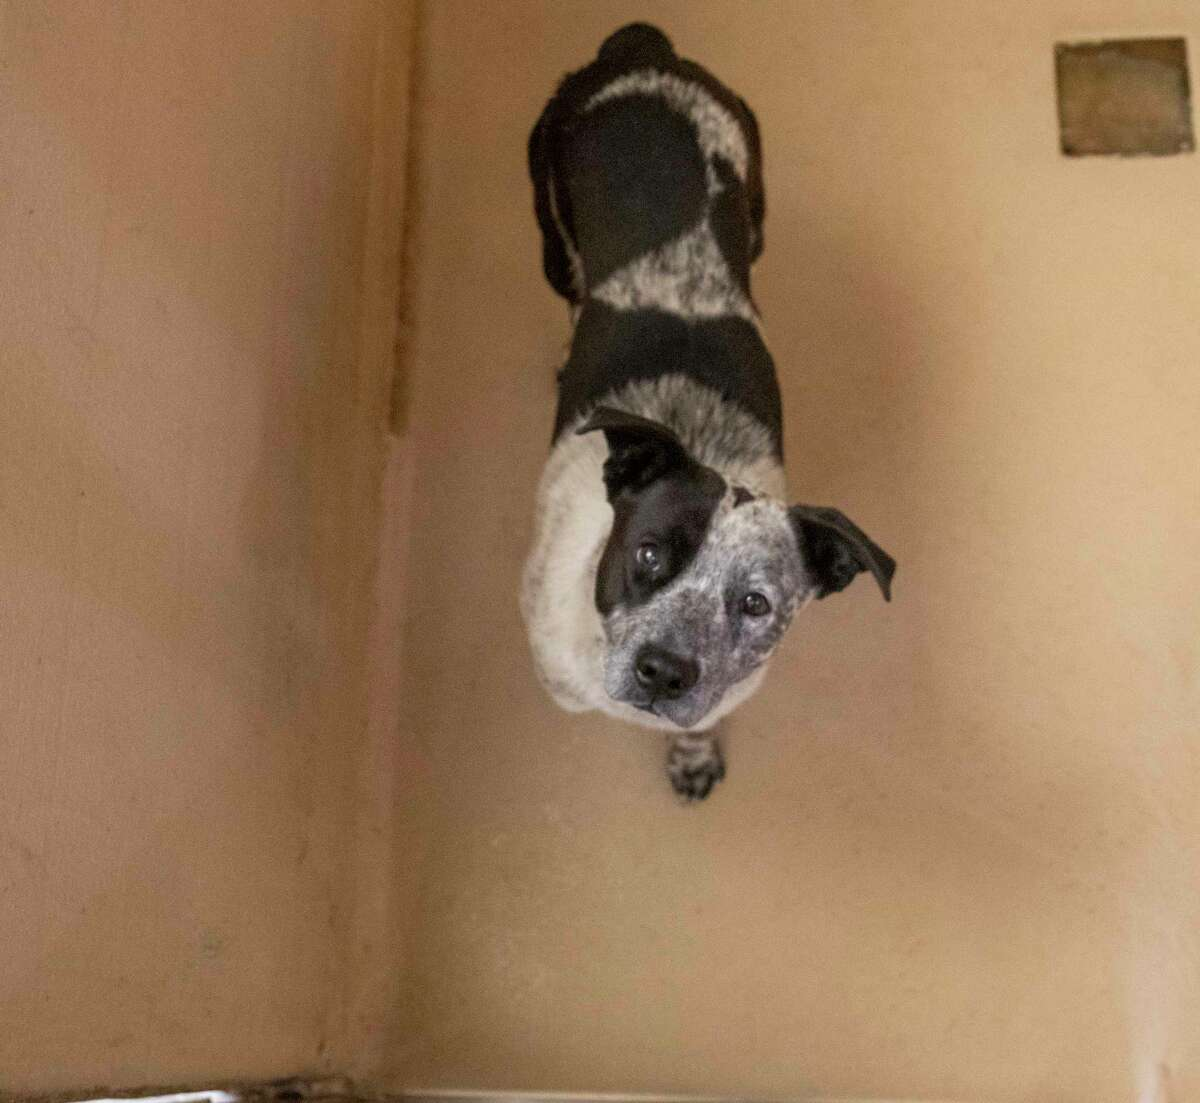 Dogs and cats up for adoption as seen Monday, May 10, 2021 at the 1200 N. Fairgrounds Road. Jacy Lewis/Reporter-Telegram